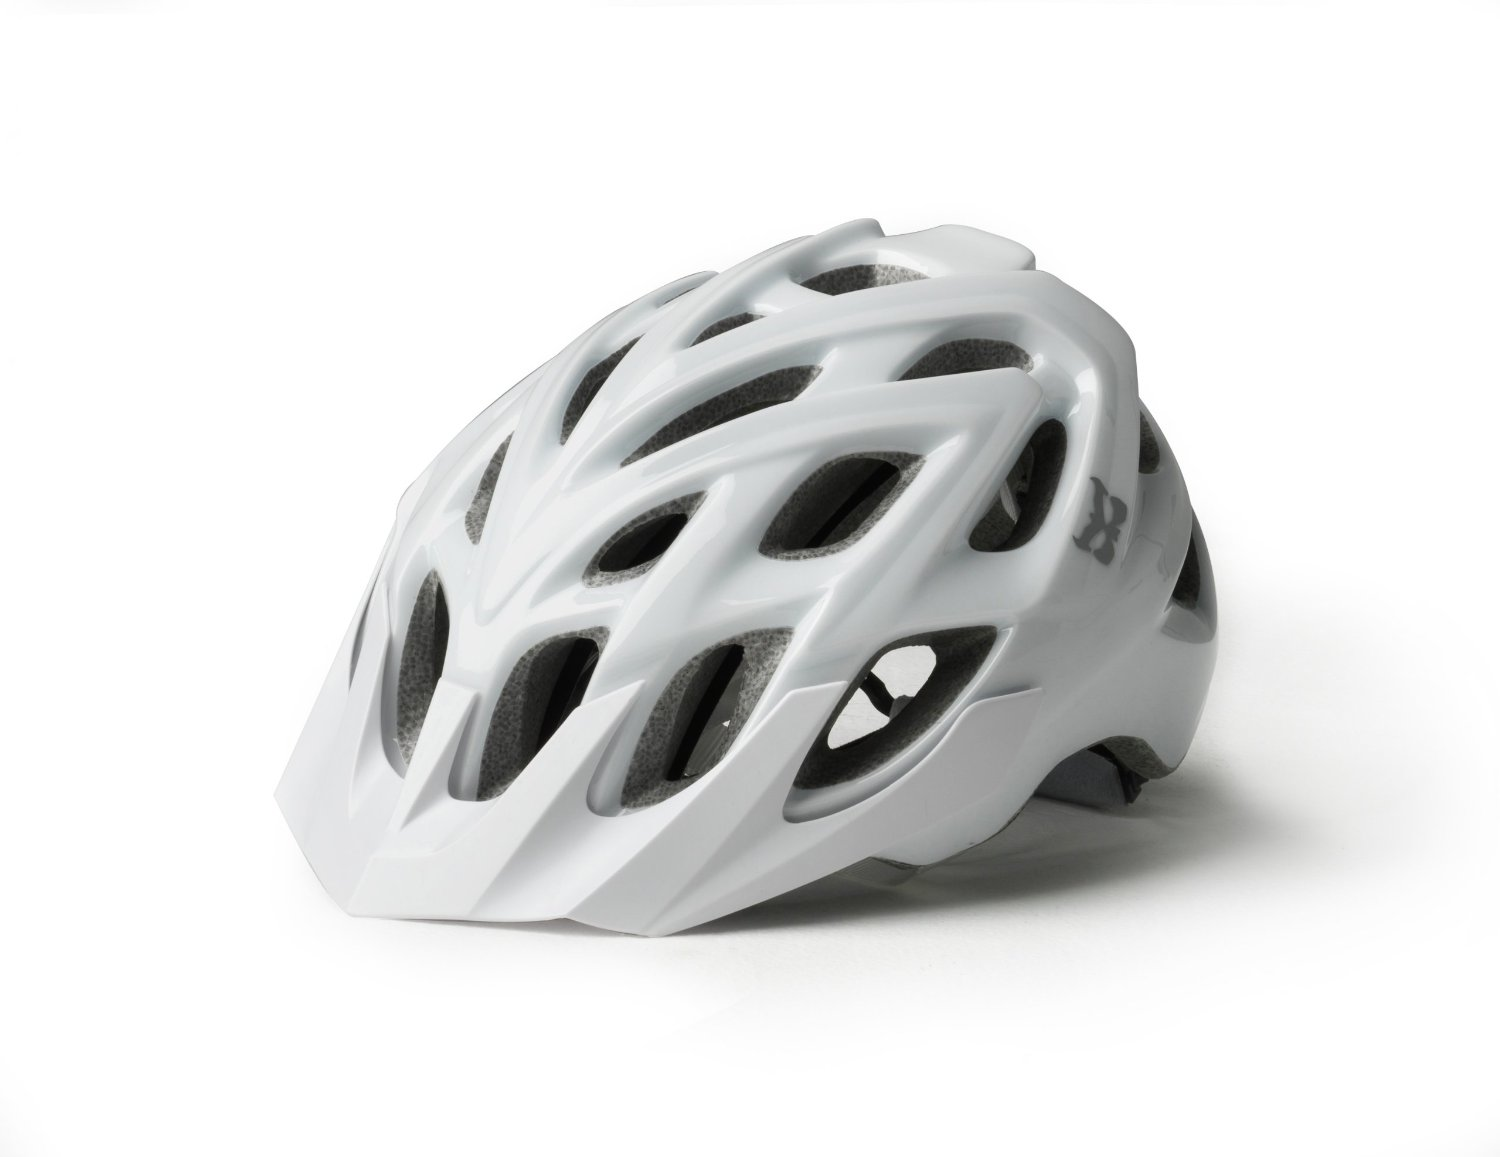 White Kali Protectives Bicycle Helmets